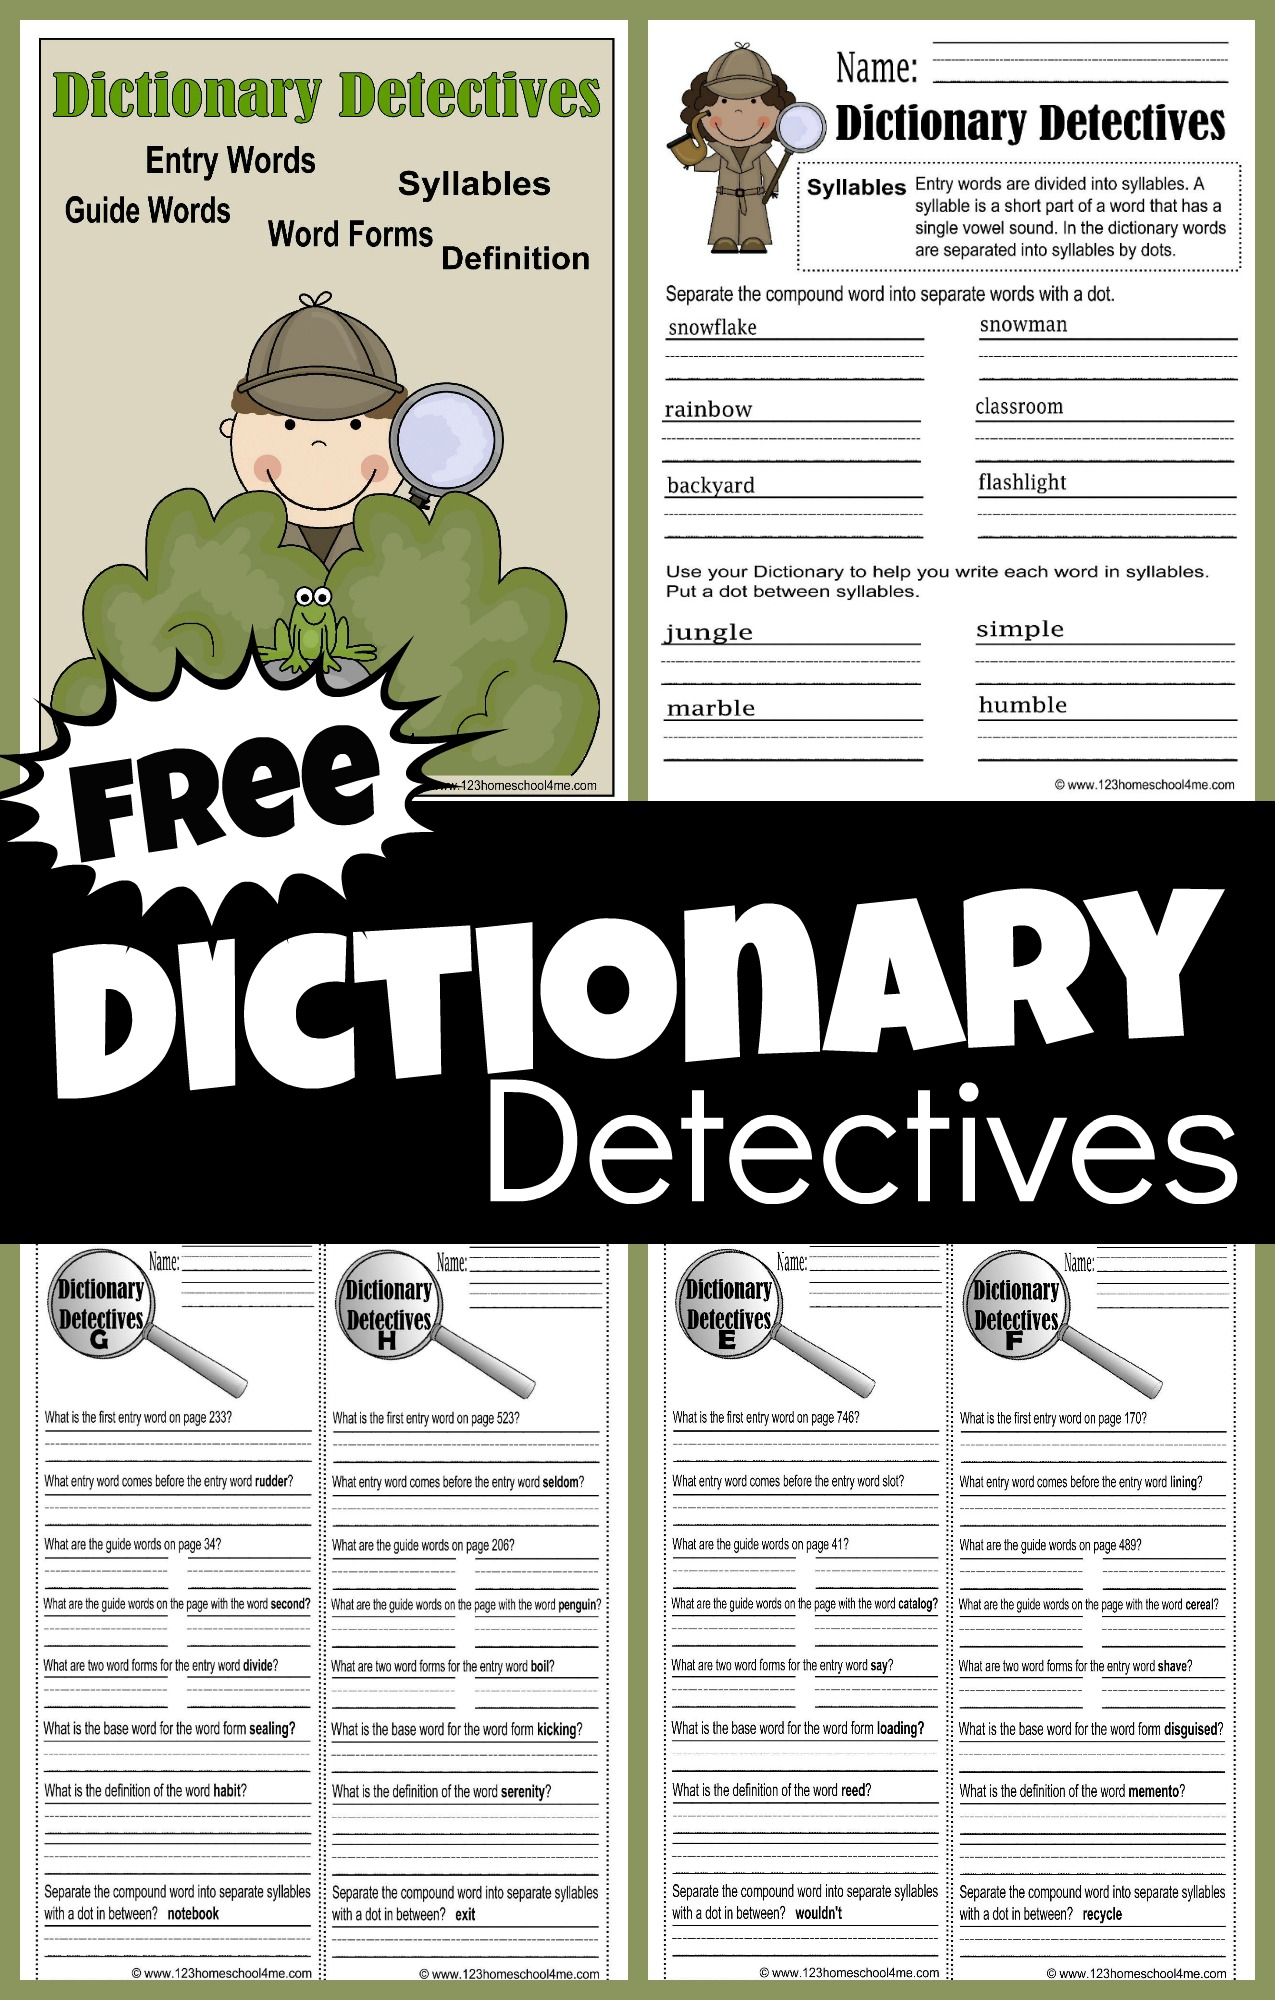 Free Dictionary Detective Worksheets For Kids